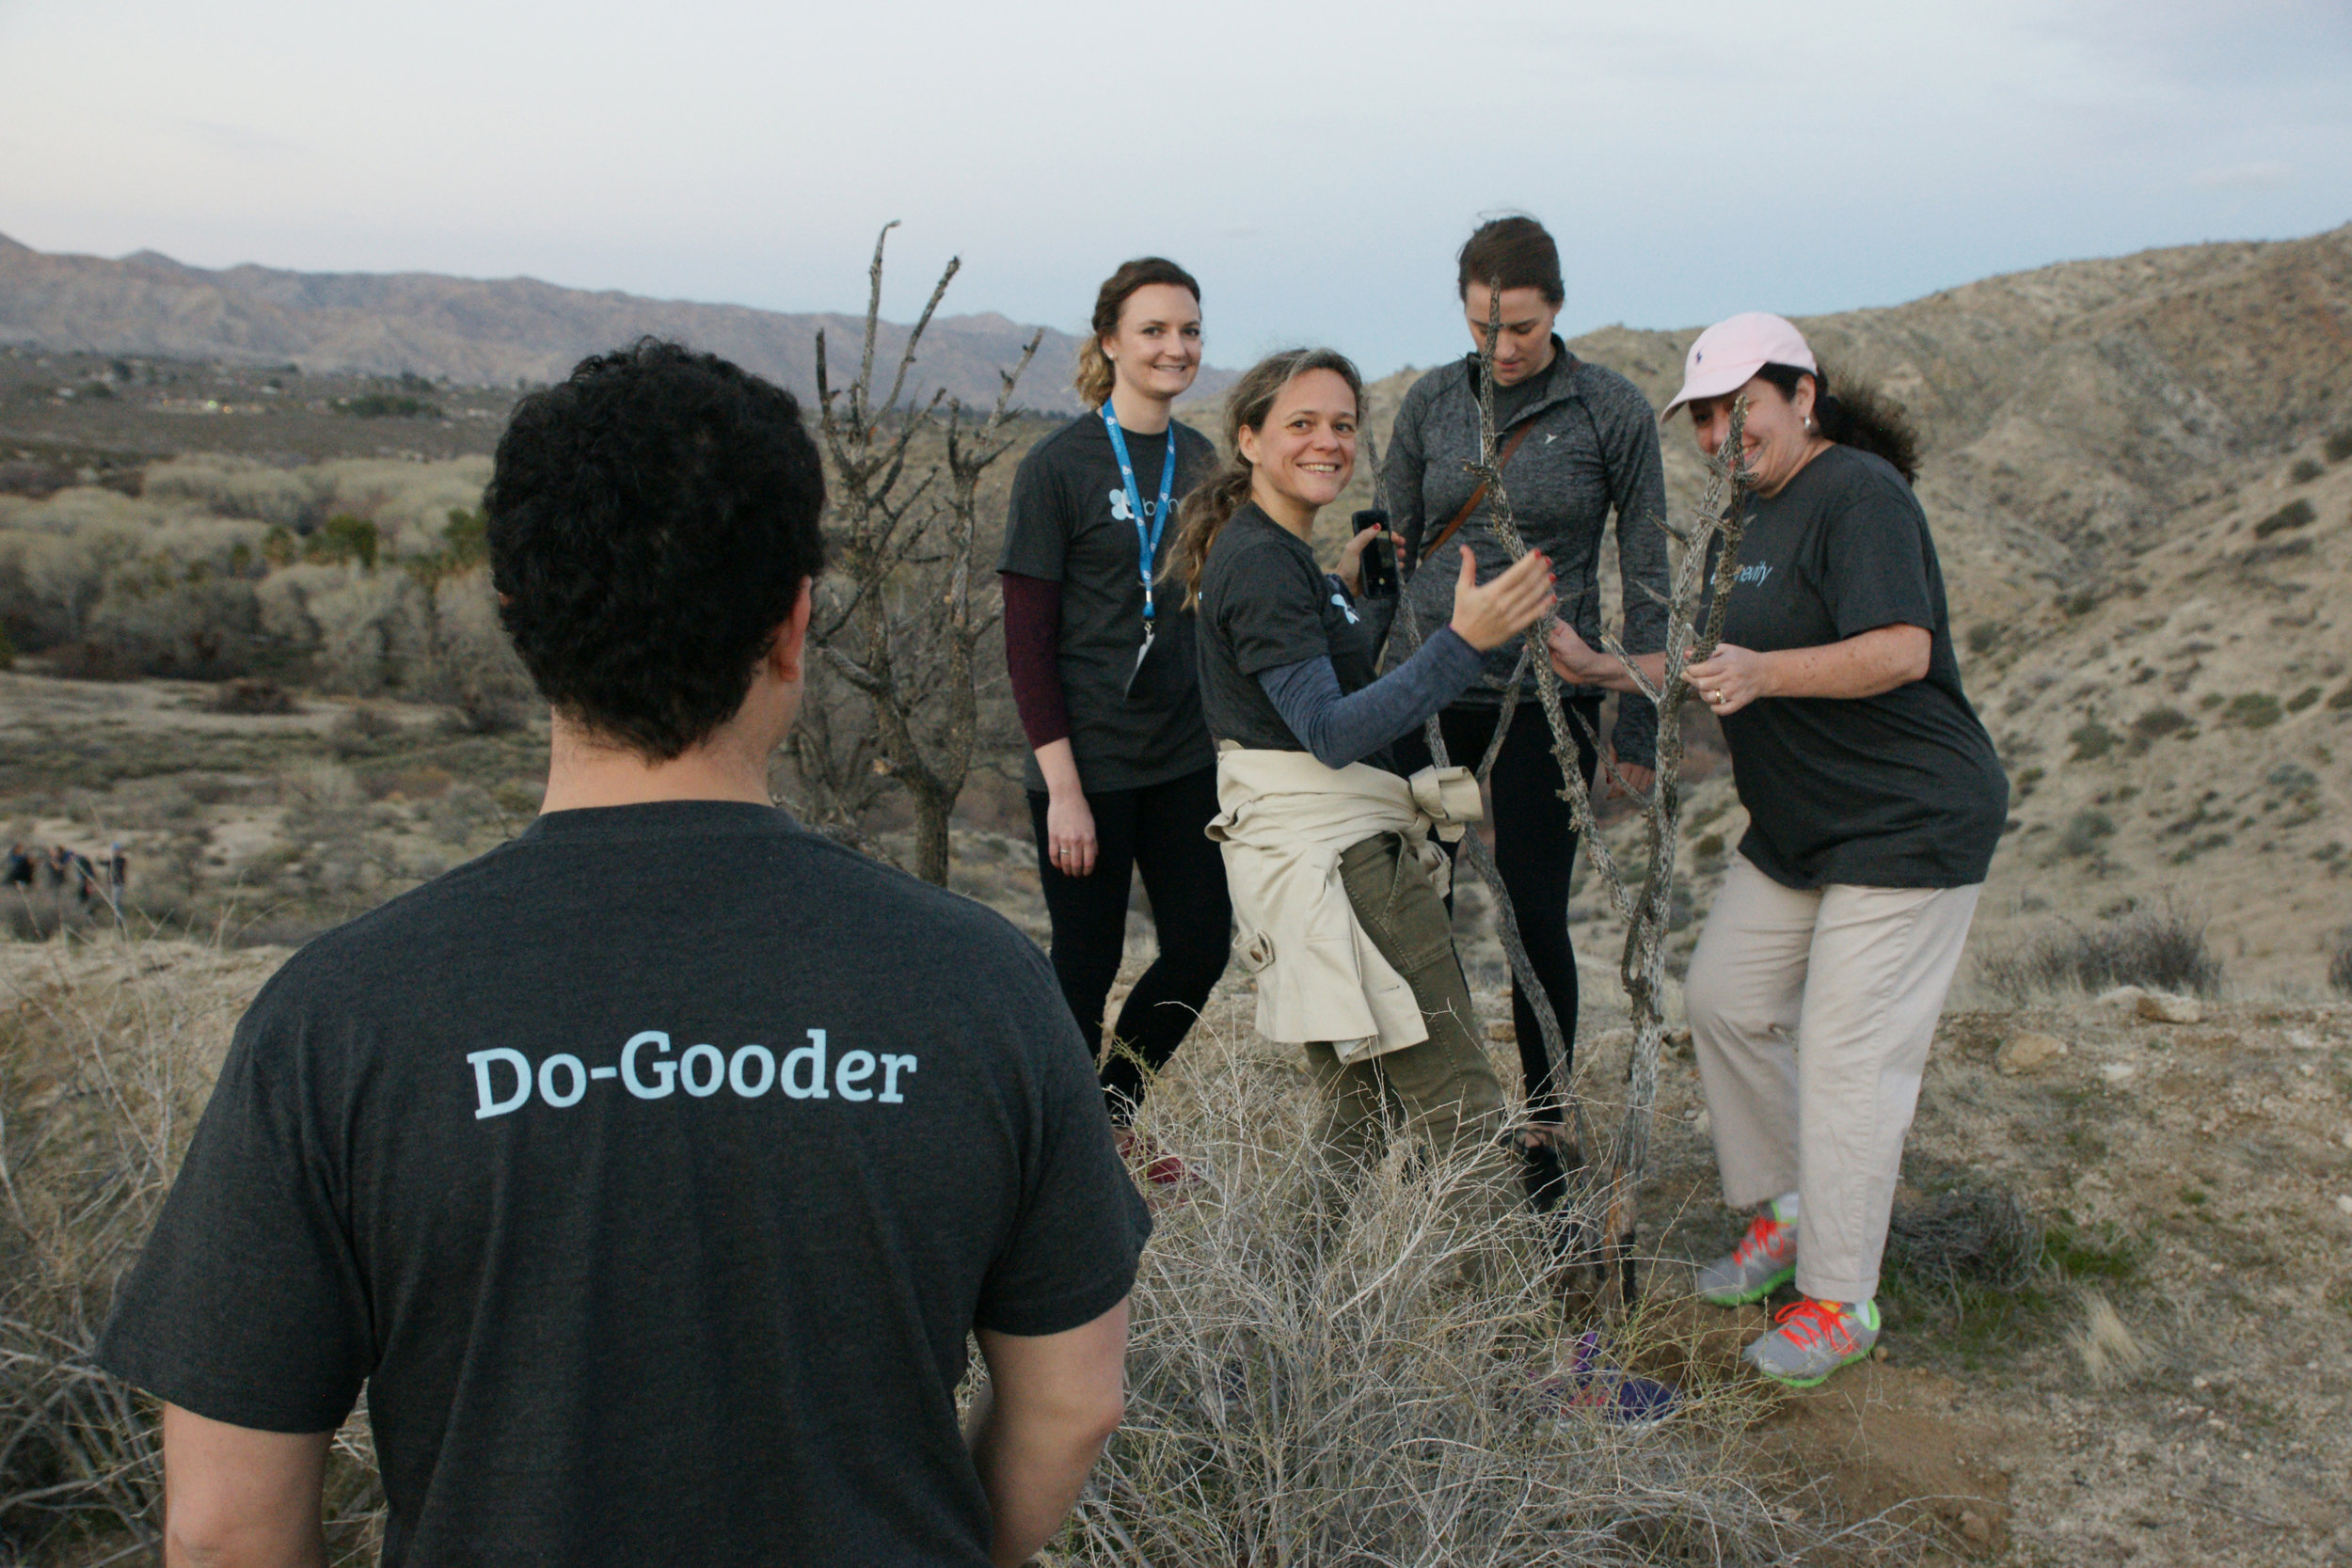 CSR leaders from Fortune 1000 companies volunteer together